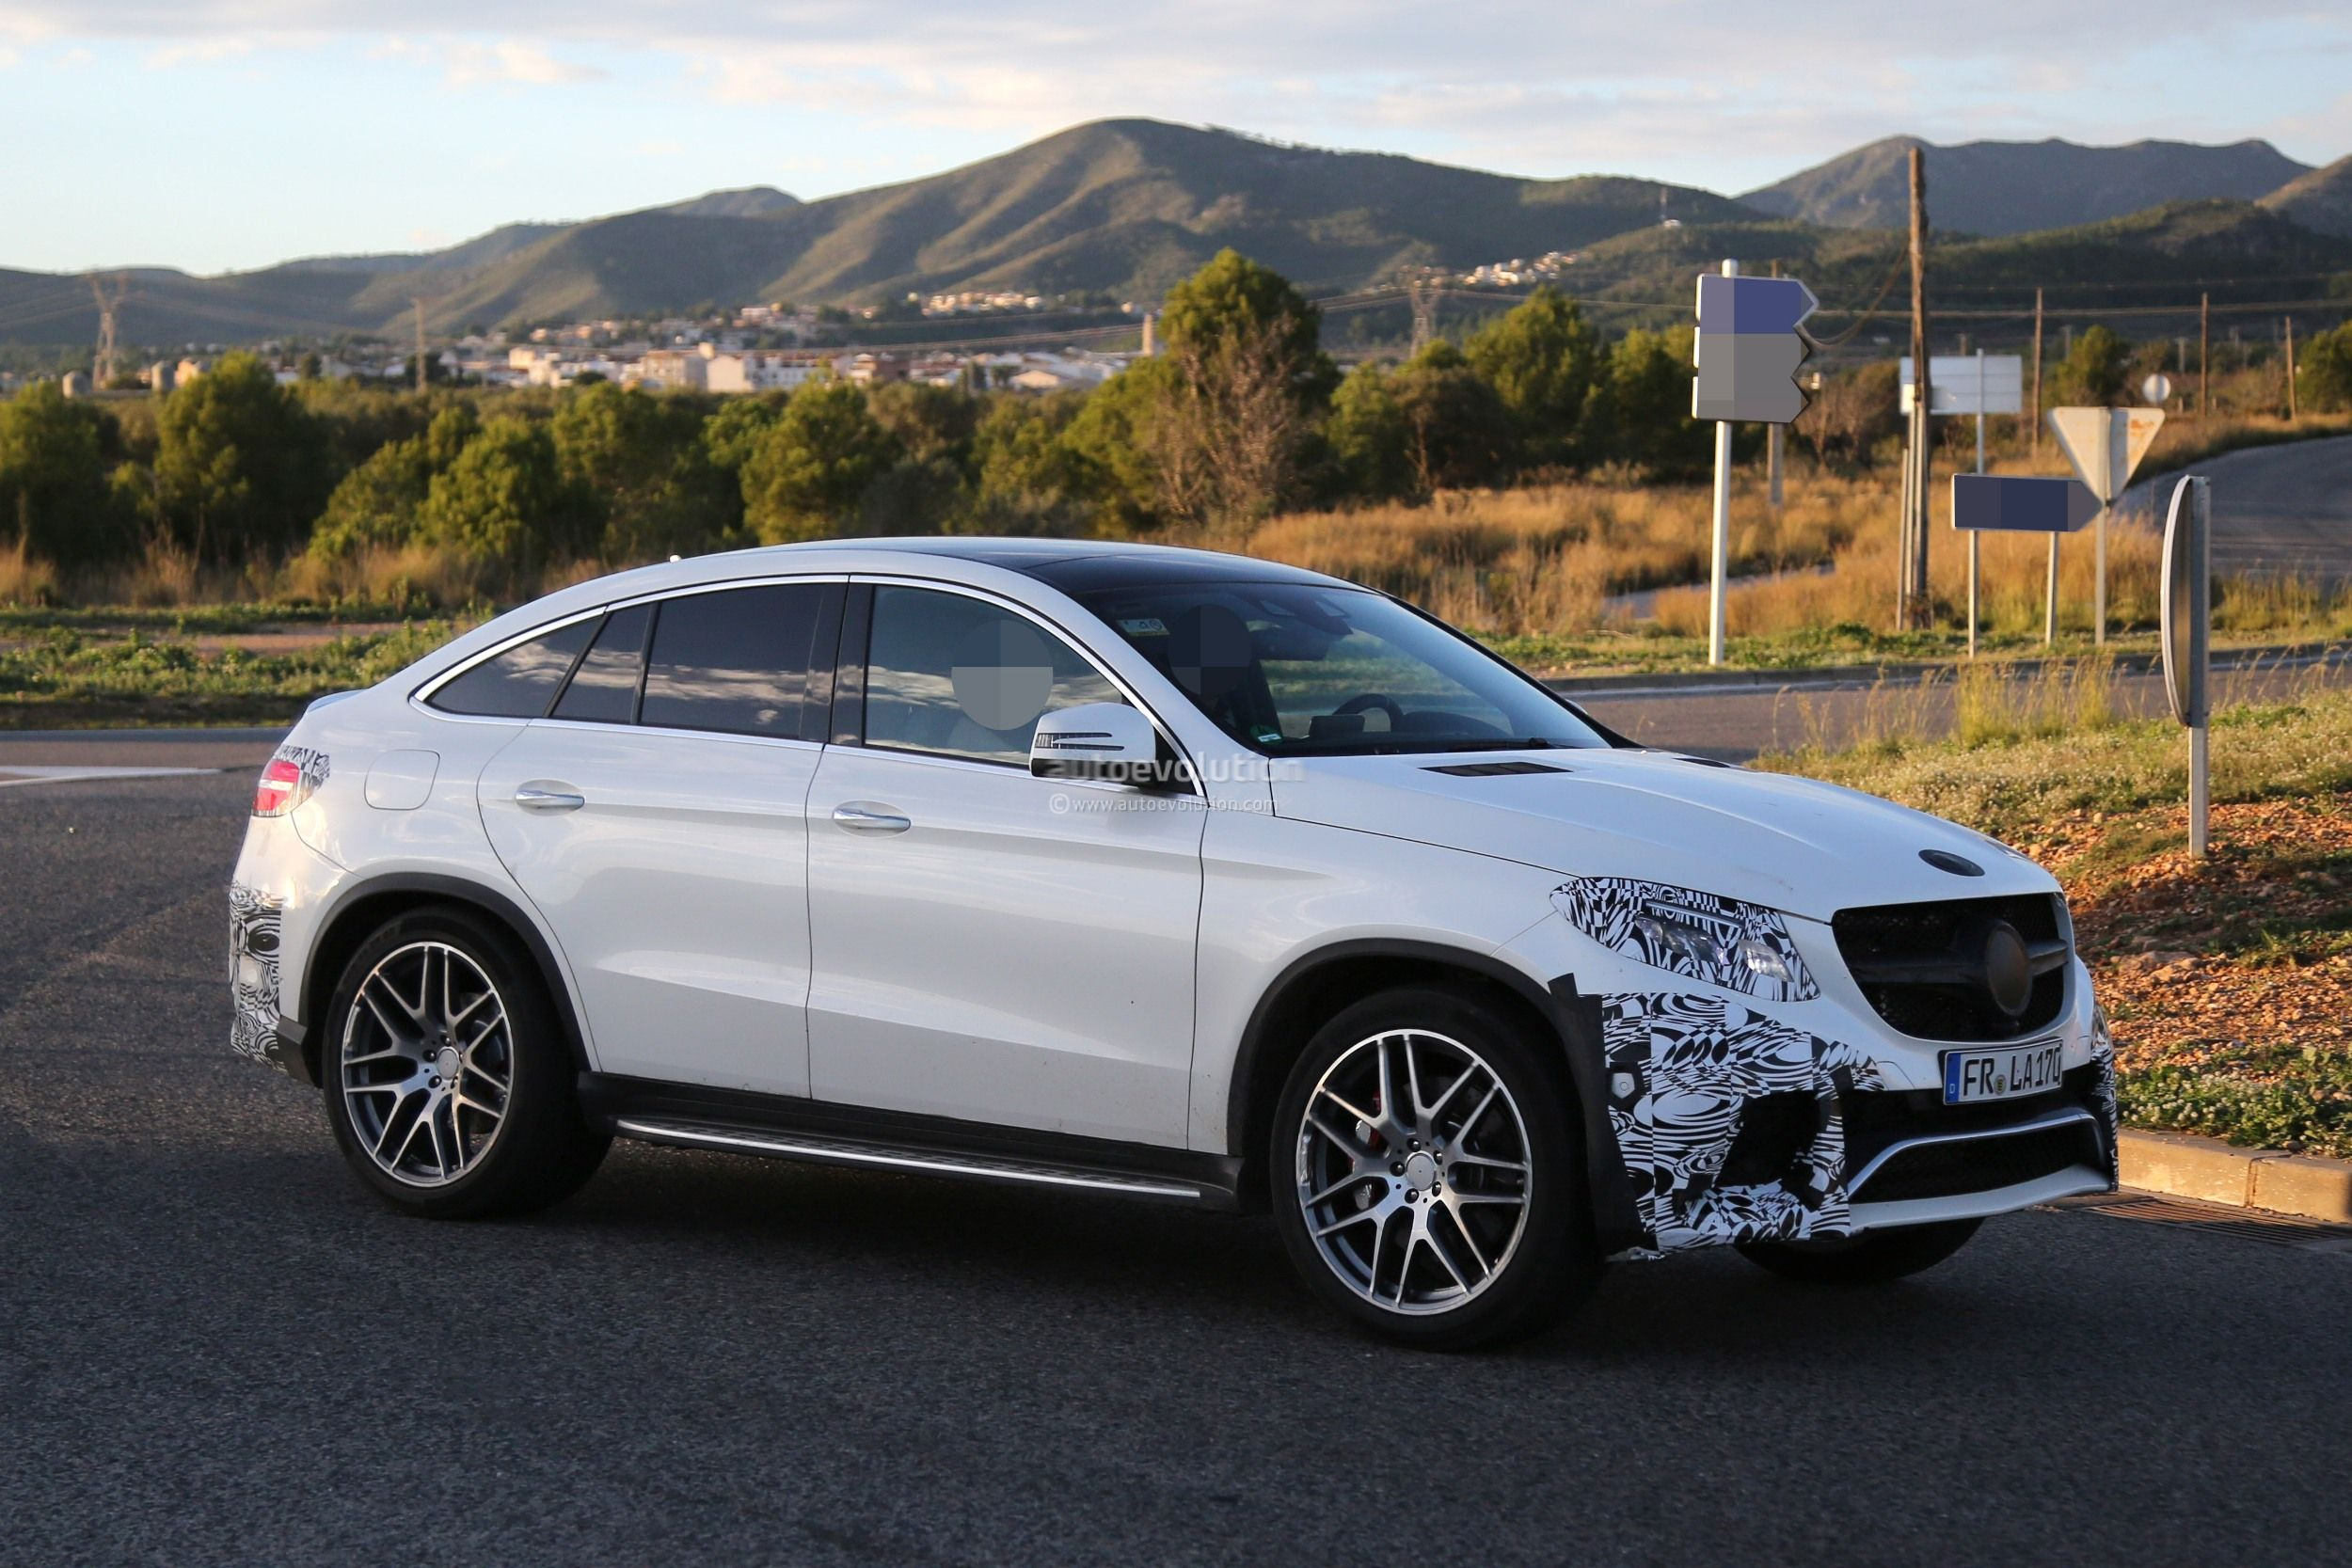 Mercedes Benz GLE 63 AMG Coupe Spied In Production Ready